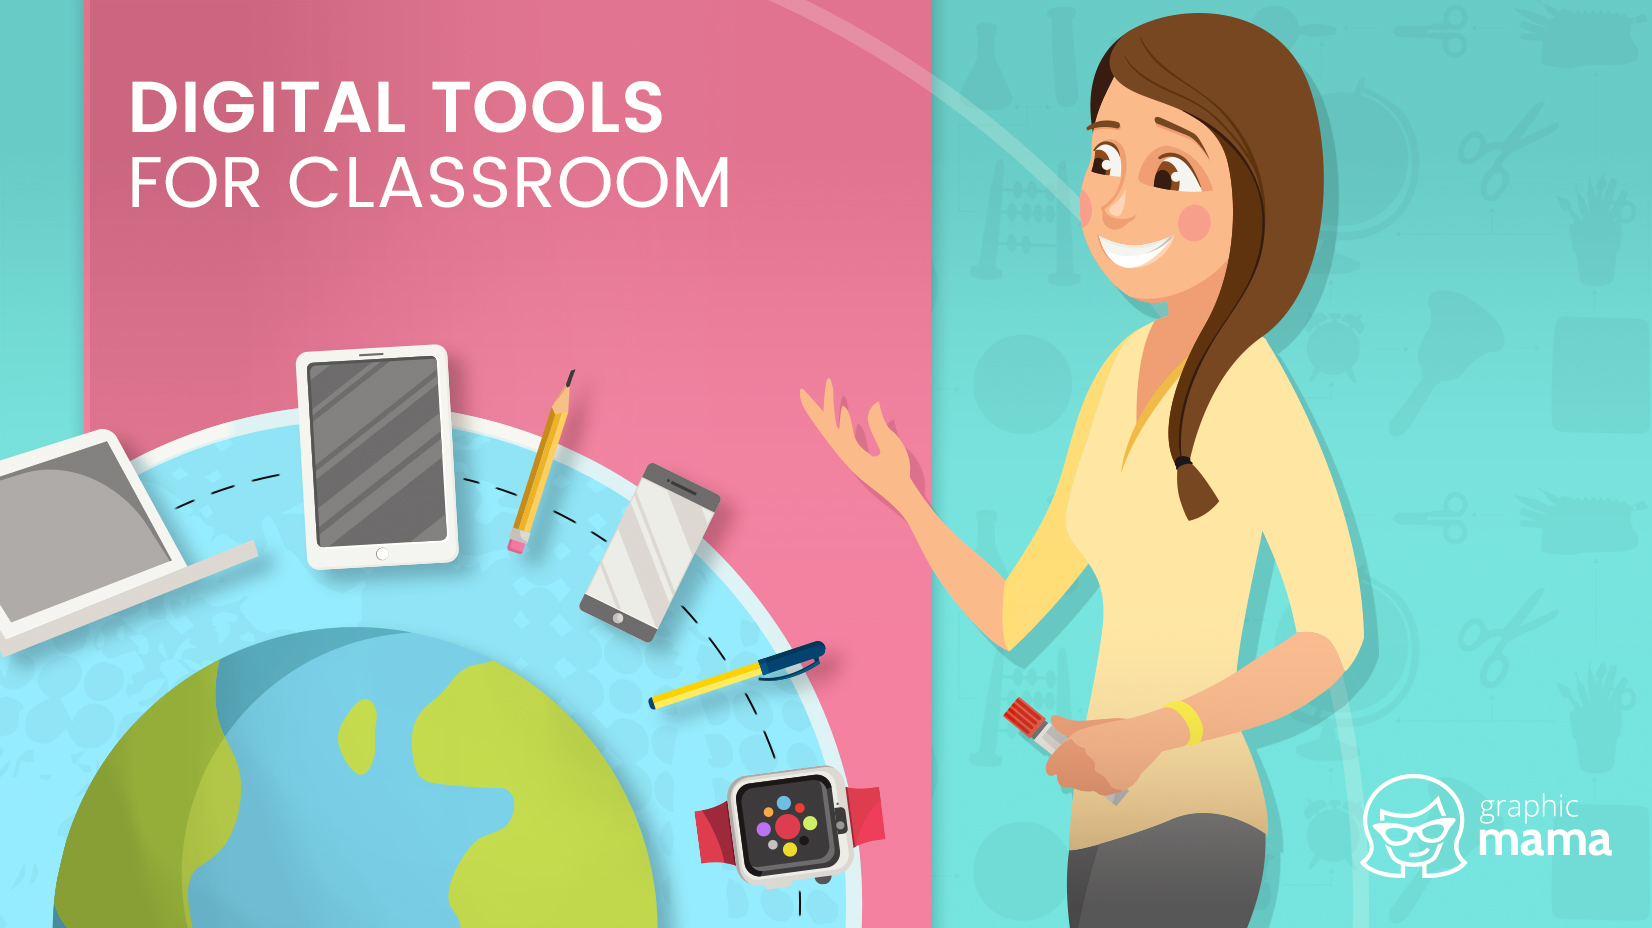 20 Digital Tools for Classroom for Innovative Teachers & Students